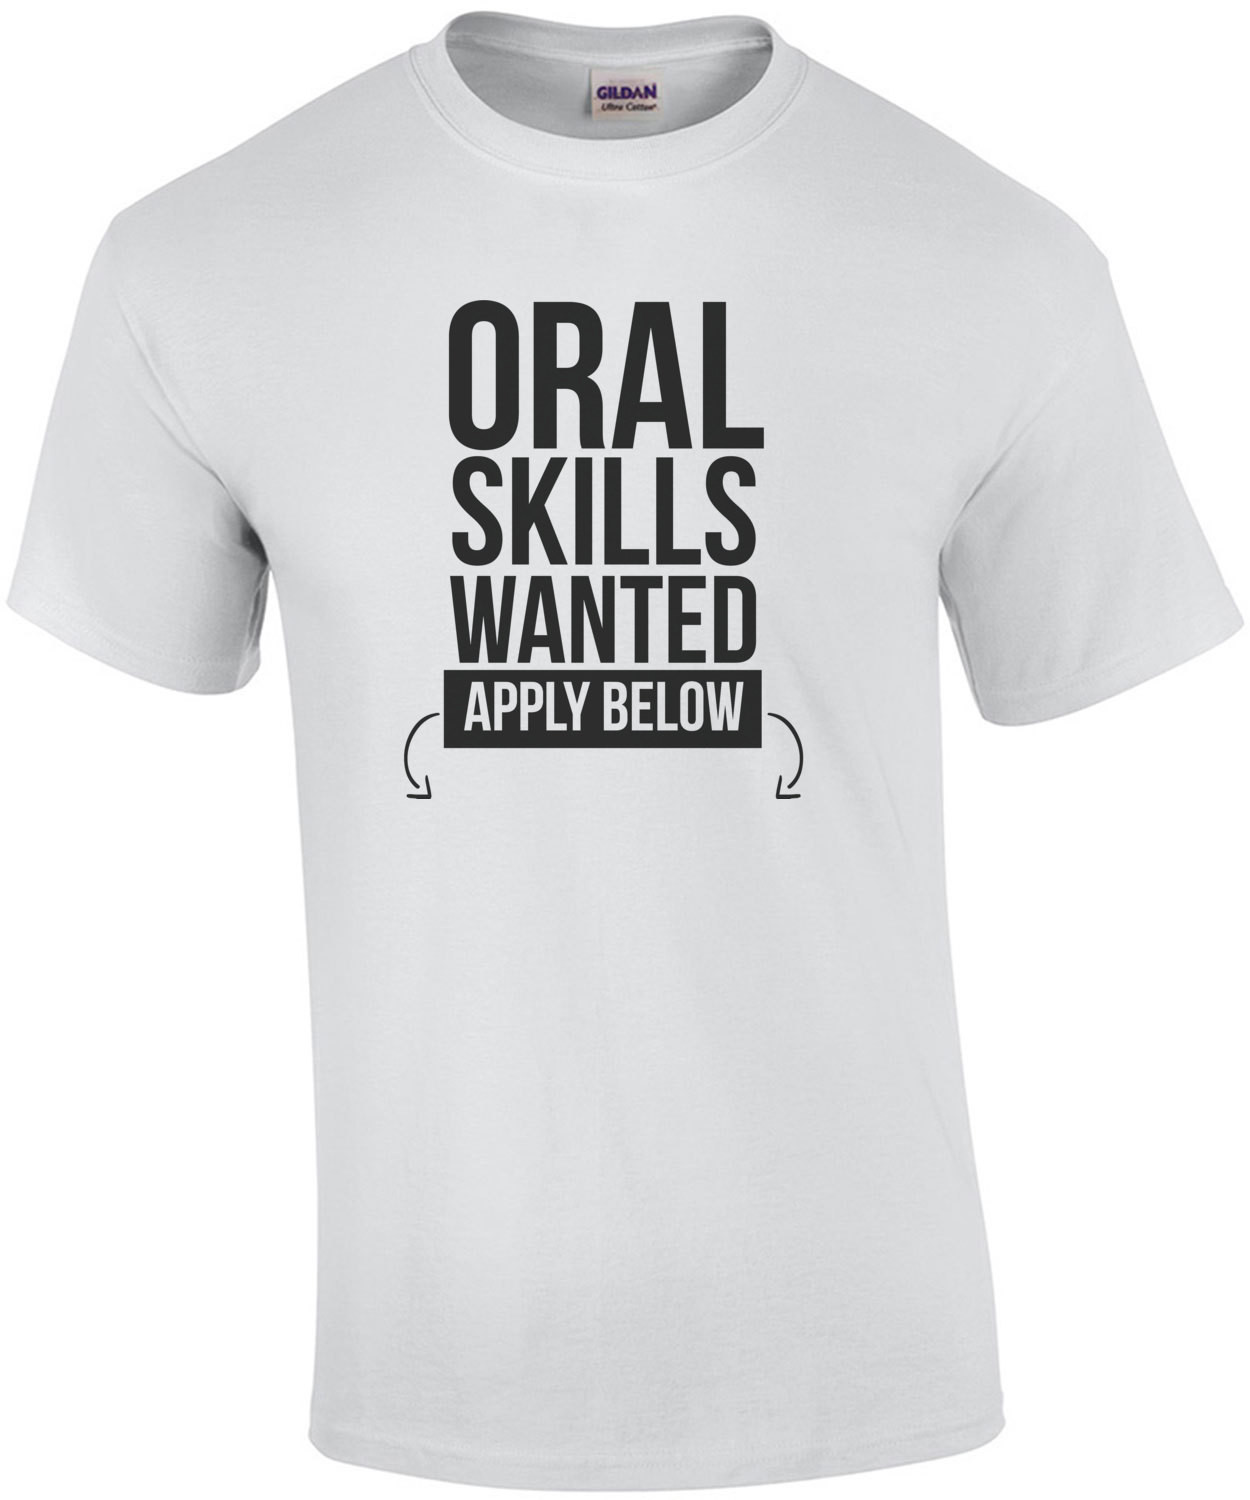 Oral Skills wanted - apply below - sexual t-shirt